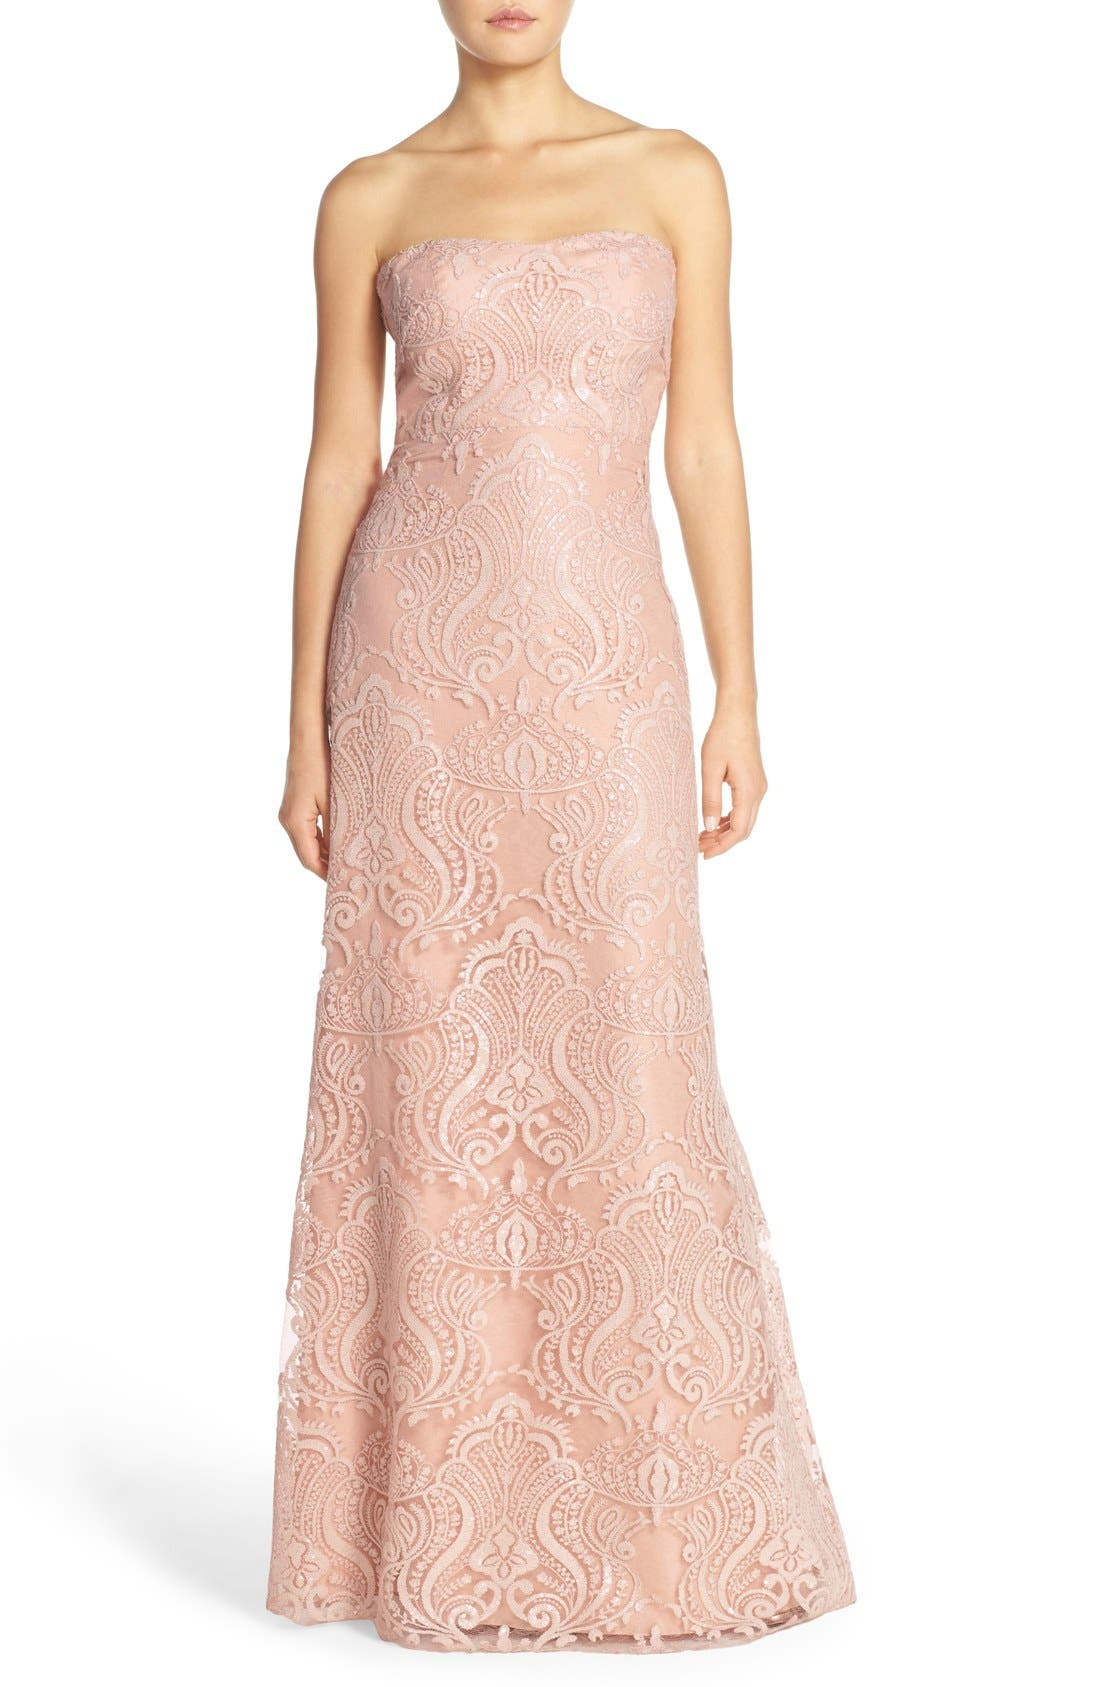 Alternate Image 1 Selected - Jenny Yoo 'Sadie' Sequin Lace Strapless A-Line Gown